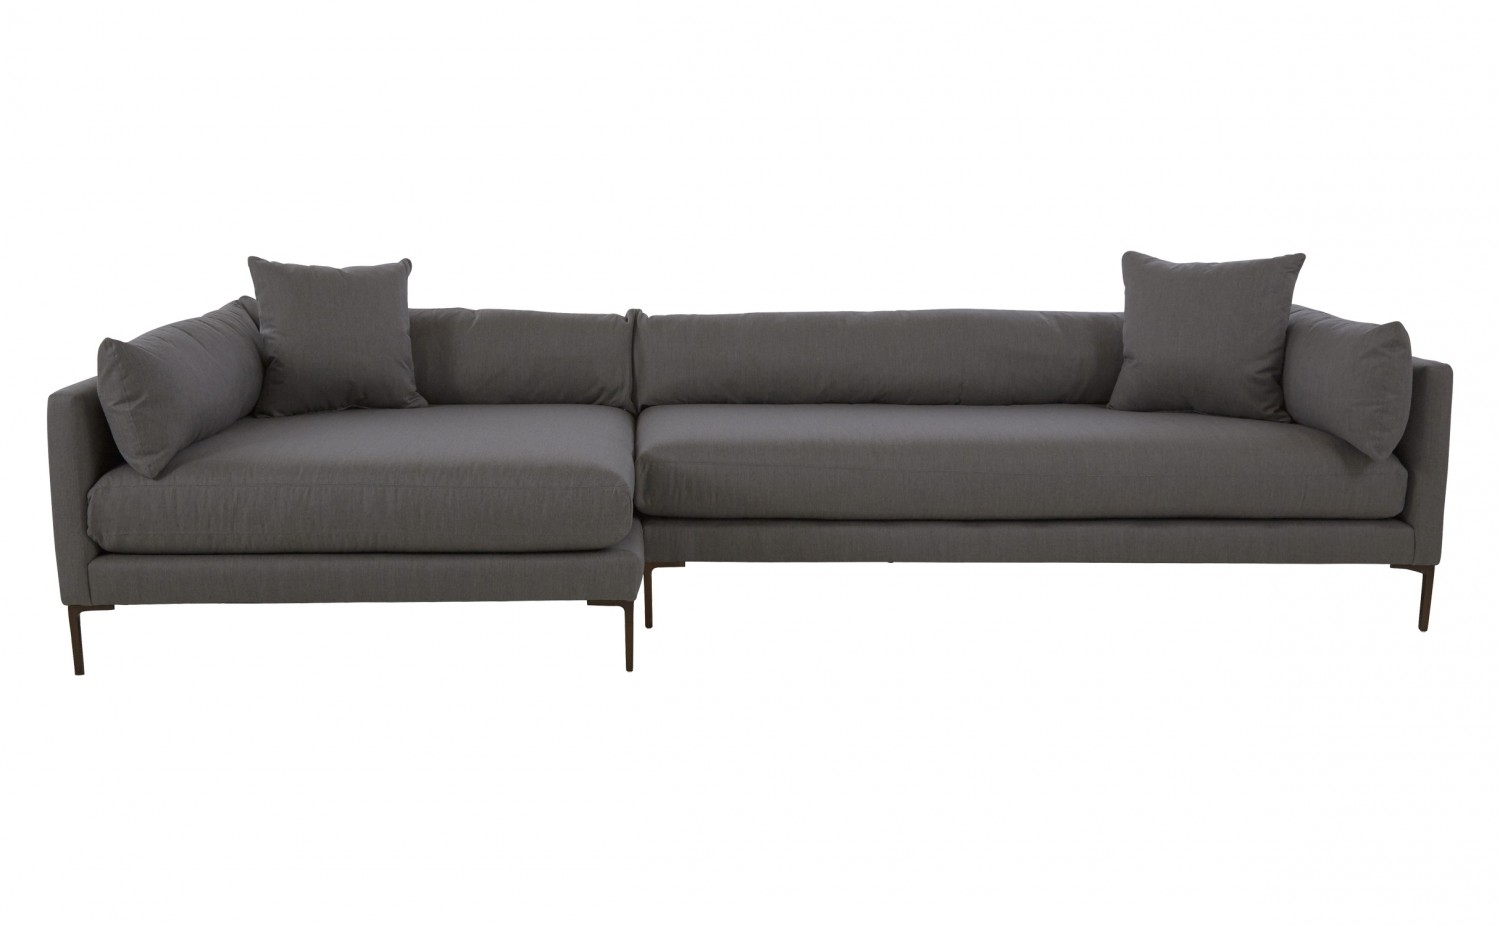 Sydney Sectional | Jayson Home Intended For Sydney Sectional Sofas (Image 7 of 10)